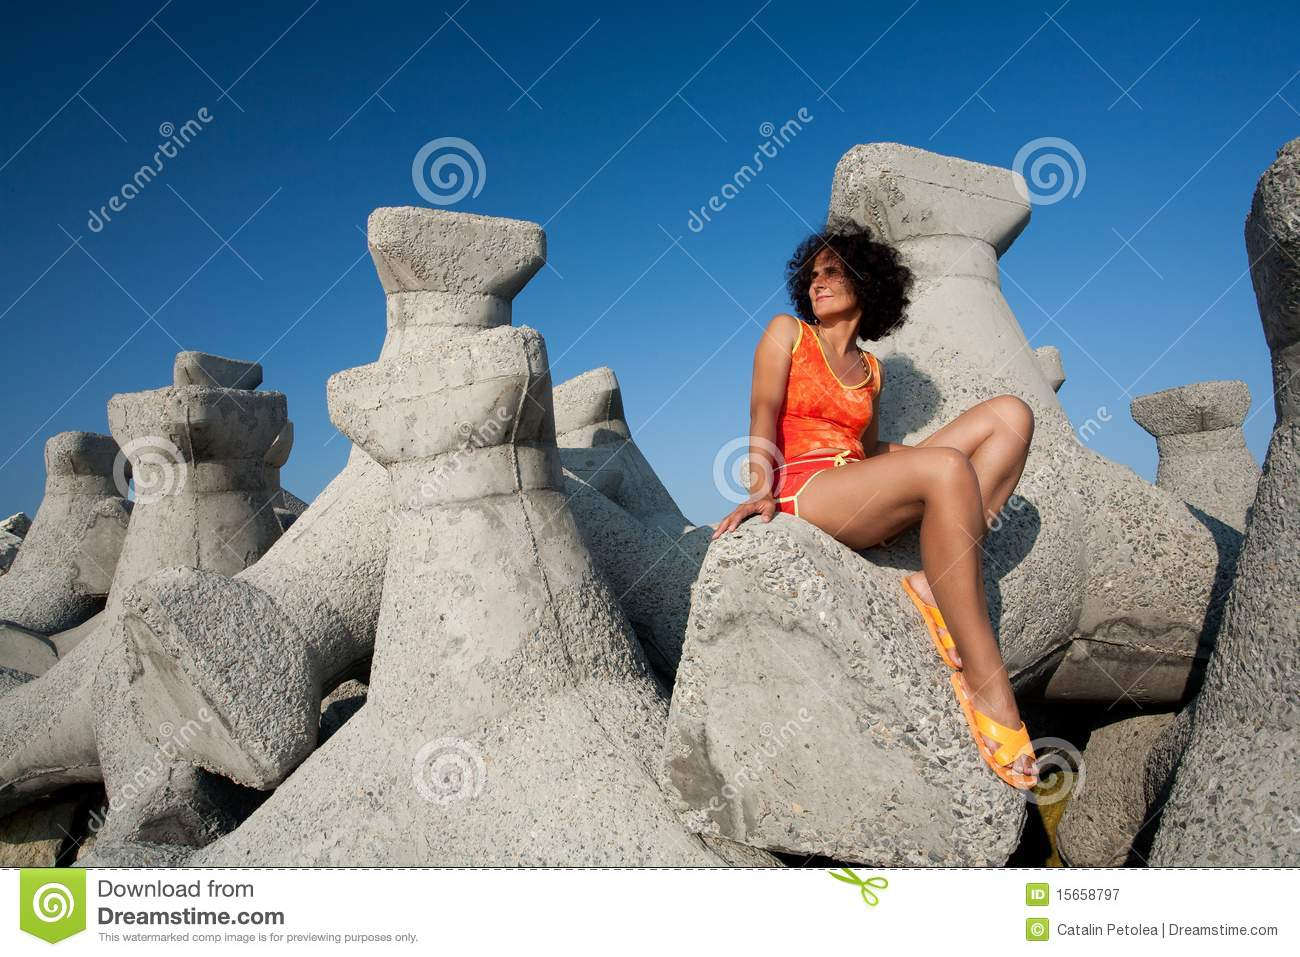 More Similar Stock Images Of Young Woman Sitting On Rocks